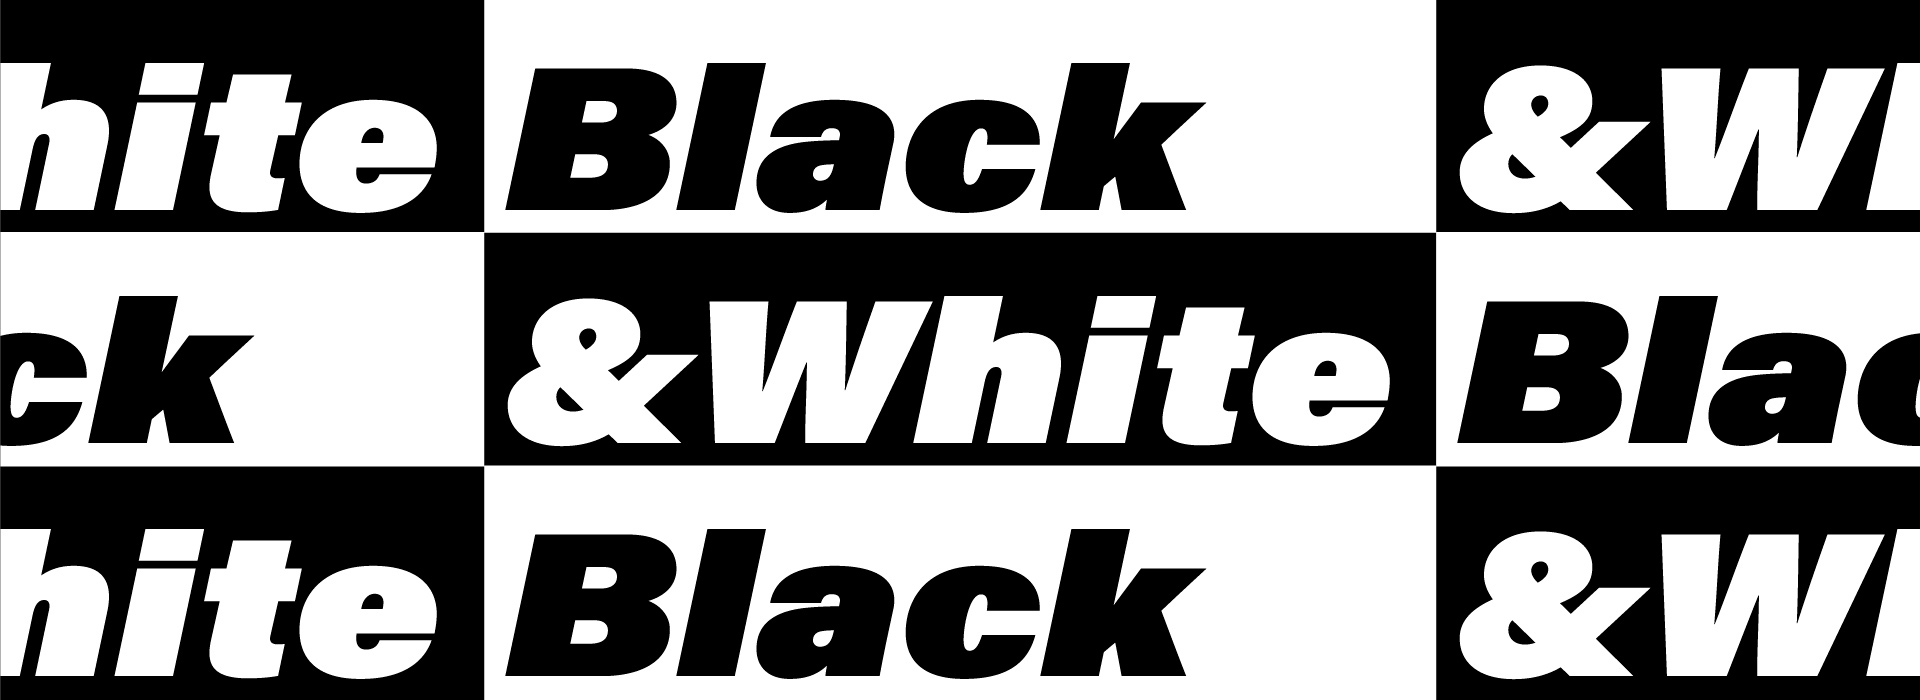 No Color Allowed: 30 Great Black and White Websites